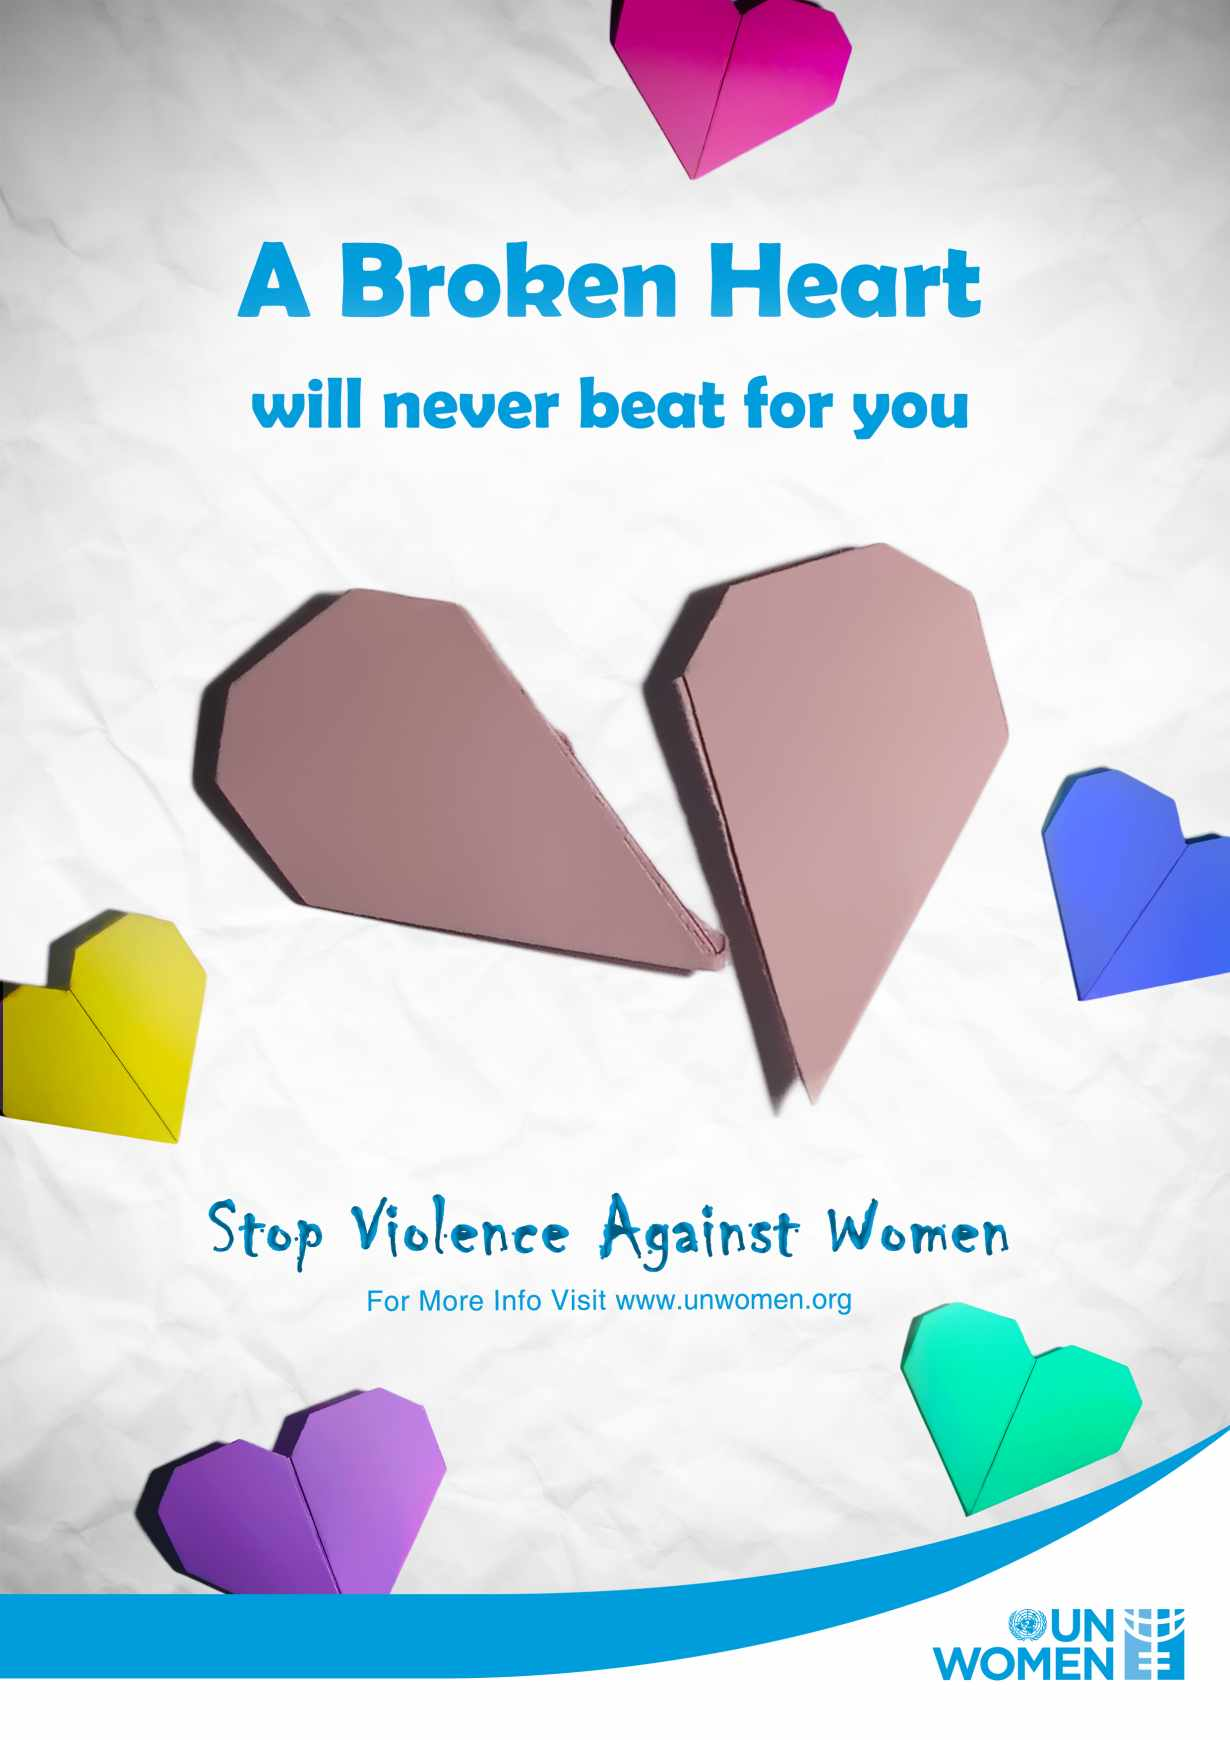 UN Women Print Ad - Never - Broken Heart